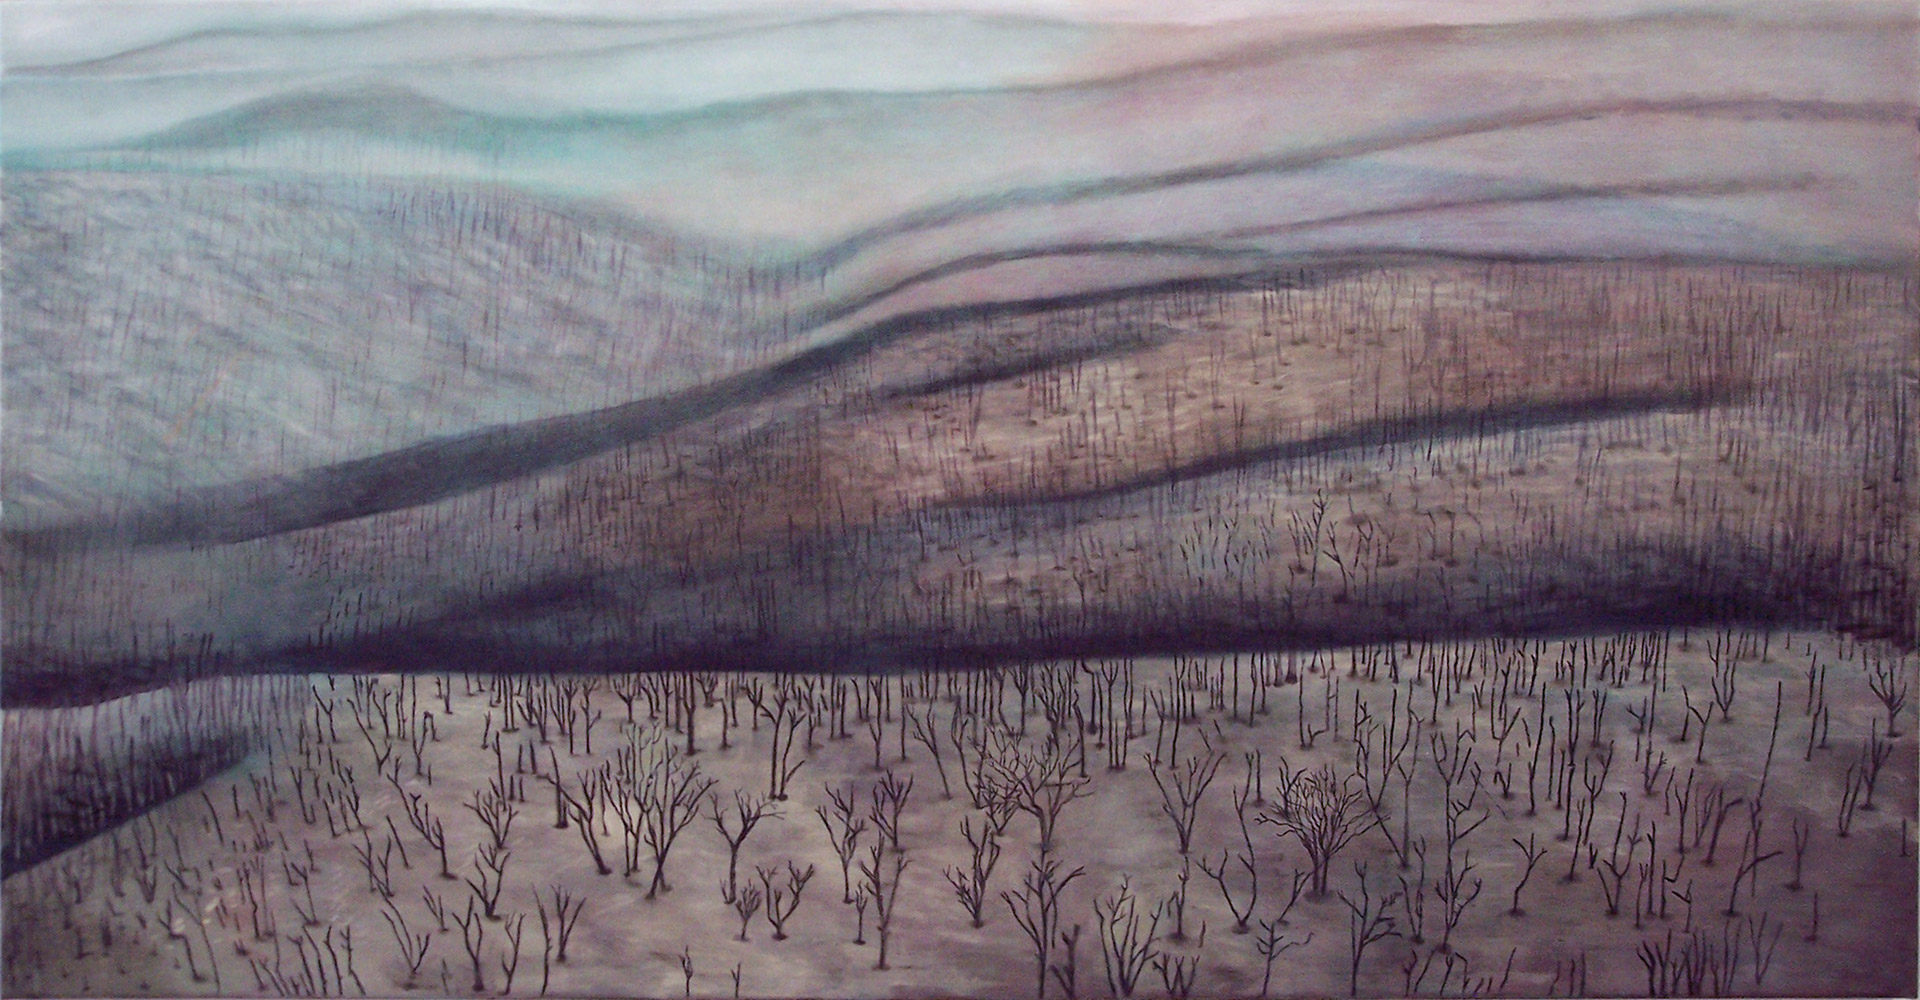 Madeleine Kelly The Charcoal Forest 2006 Oil on polyester 68 x 135cm